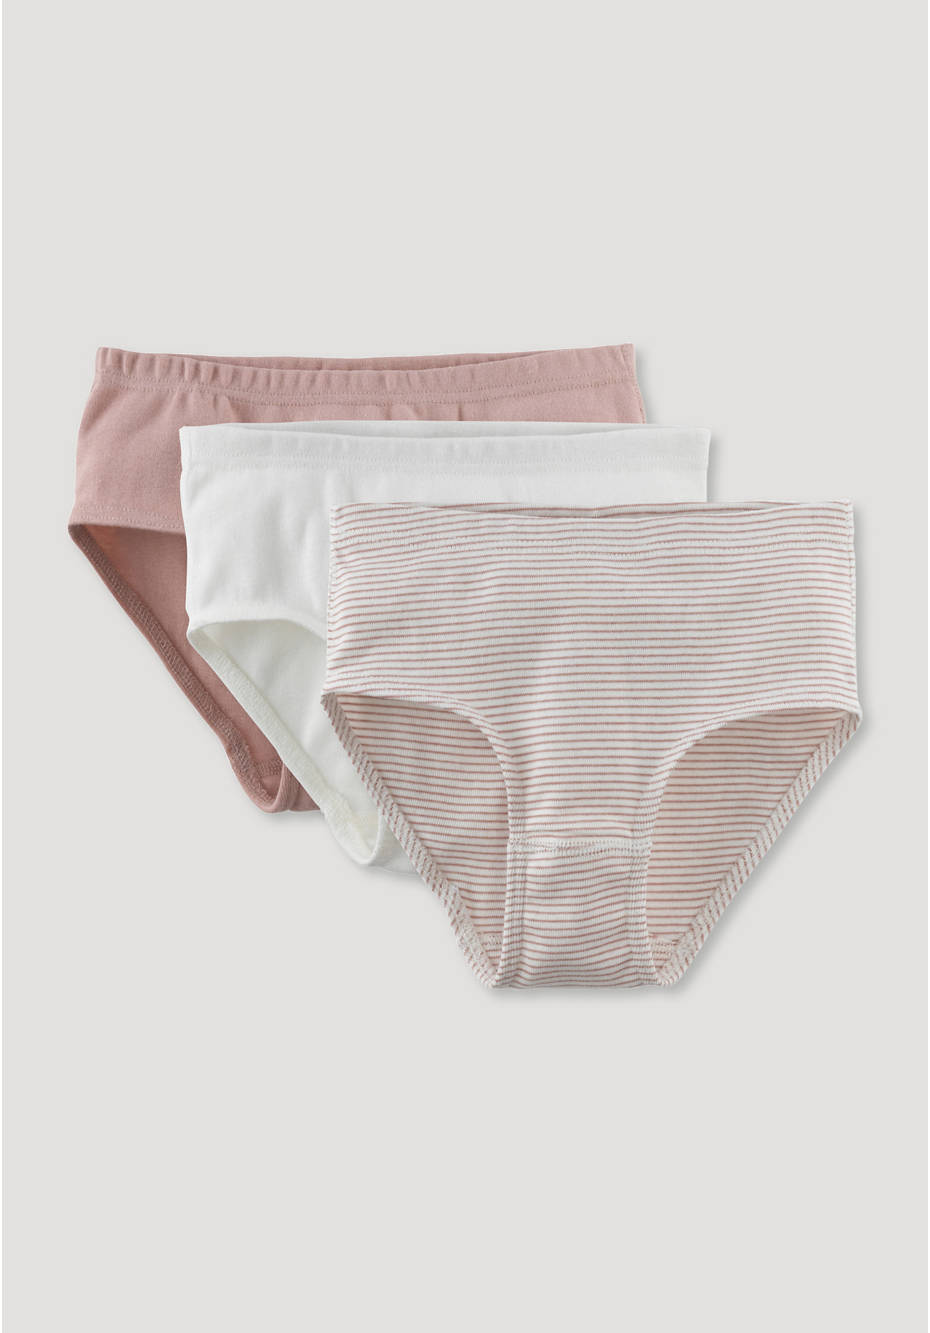 Set of 3 briefs made from pure organic cotton